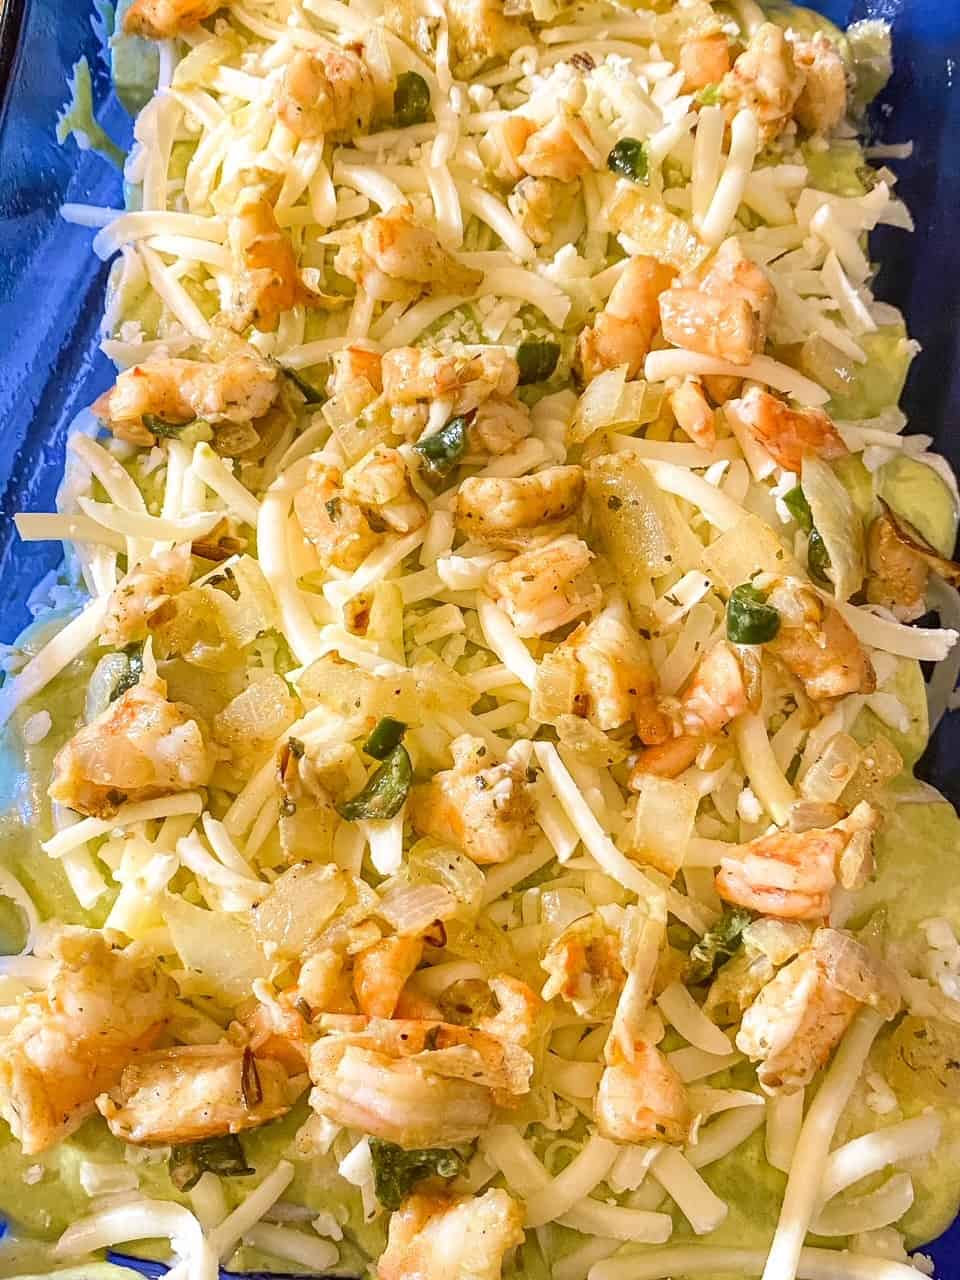 shrimp enchiladas prepared in a dish before they are baked